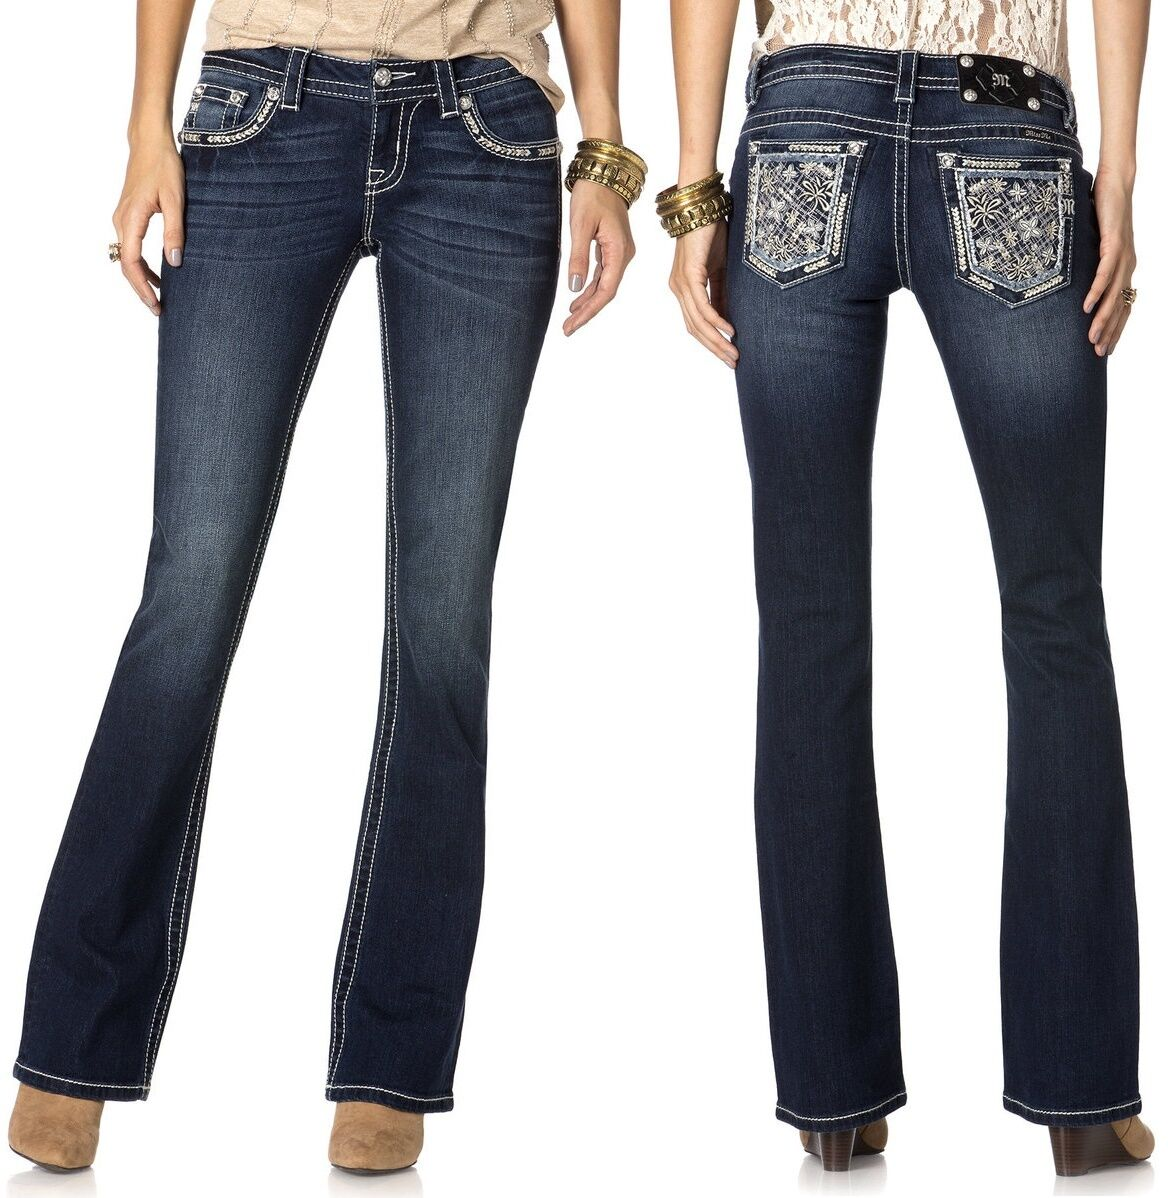 Miss Me JP8287B Blooming Bouquet Embellished Dark bluee Bootcut Jeans, 27R -